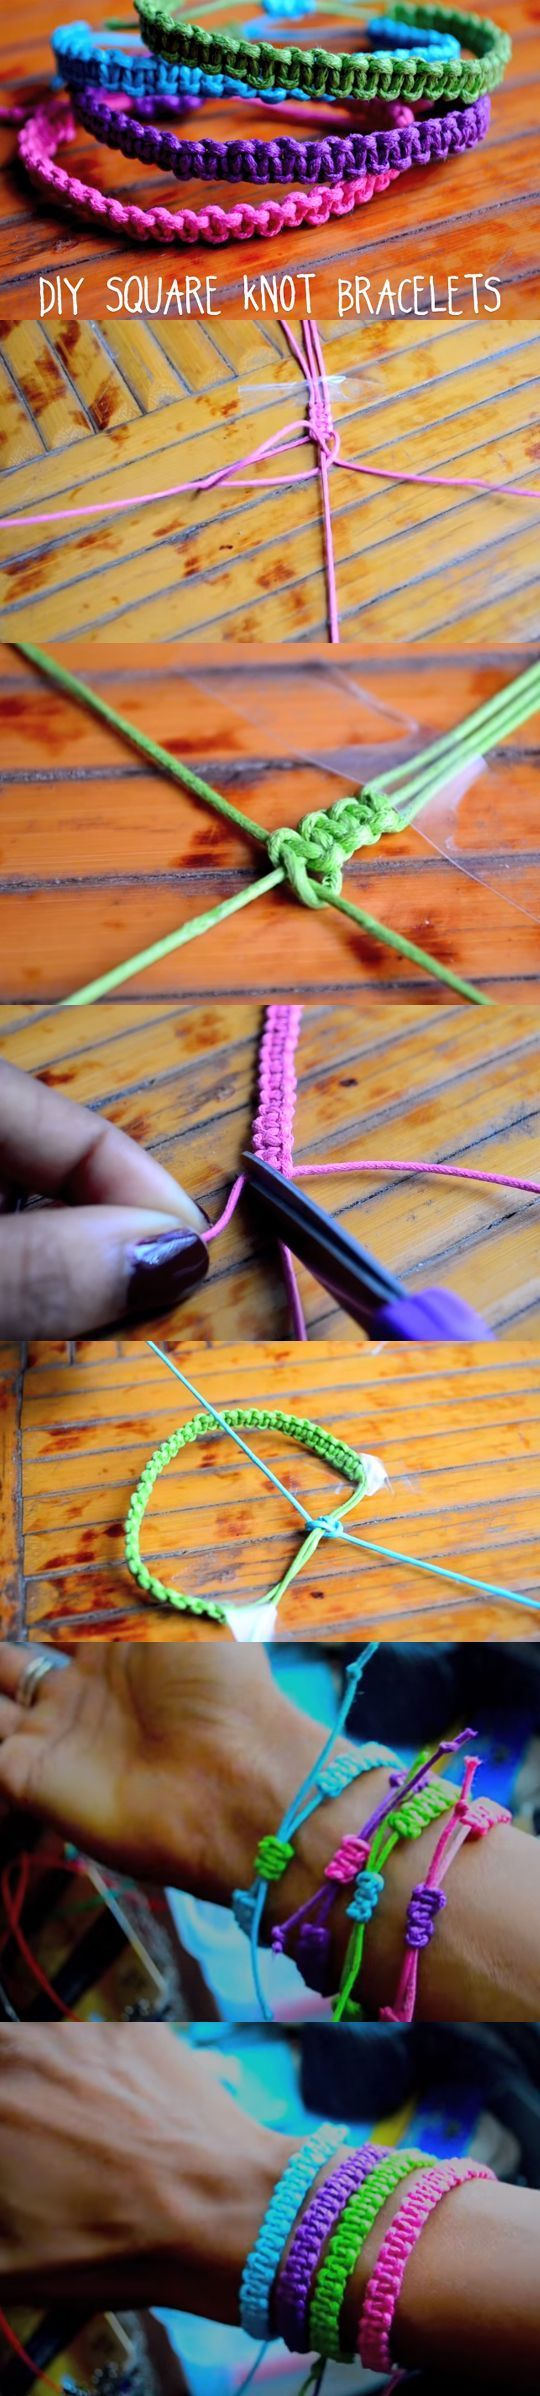 "These lovely bracelets Would Be the perfect gift to your BFF. Watch the video, and learn how to craft stackable bracelets using the ""square knots"" technique. See video and written instructions here: http://gwyl.io/easy-make-square-knot-bracelets/:"